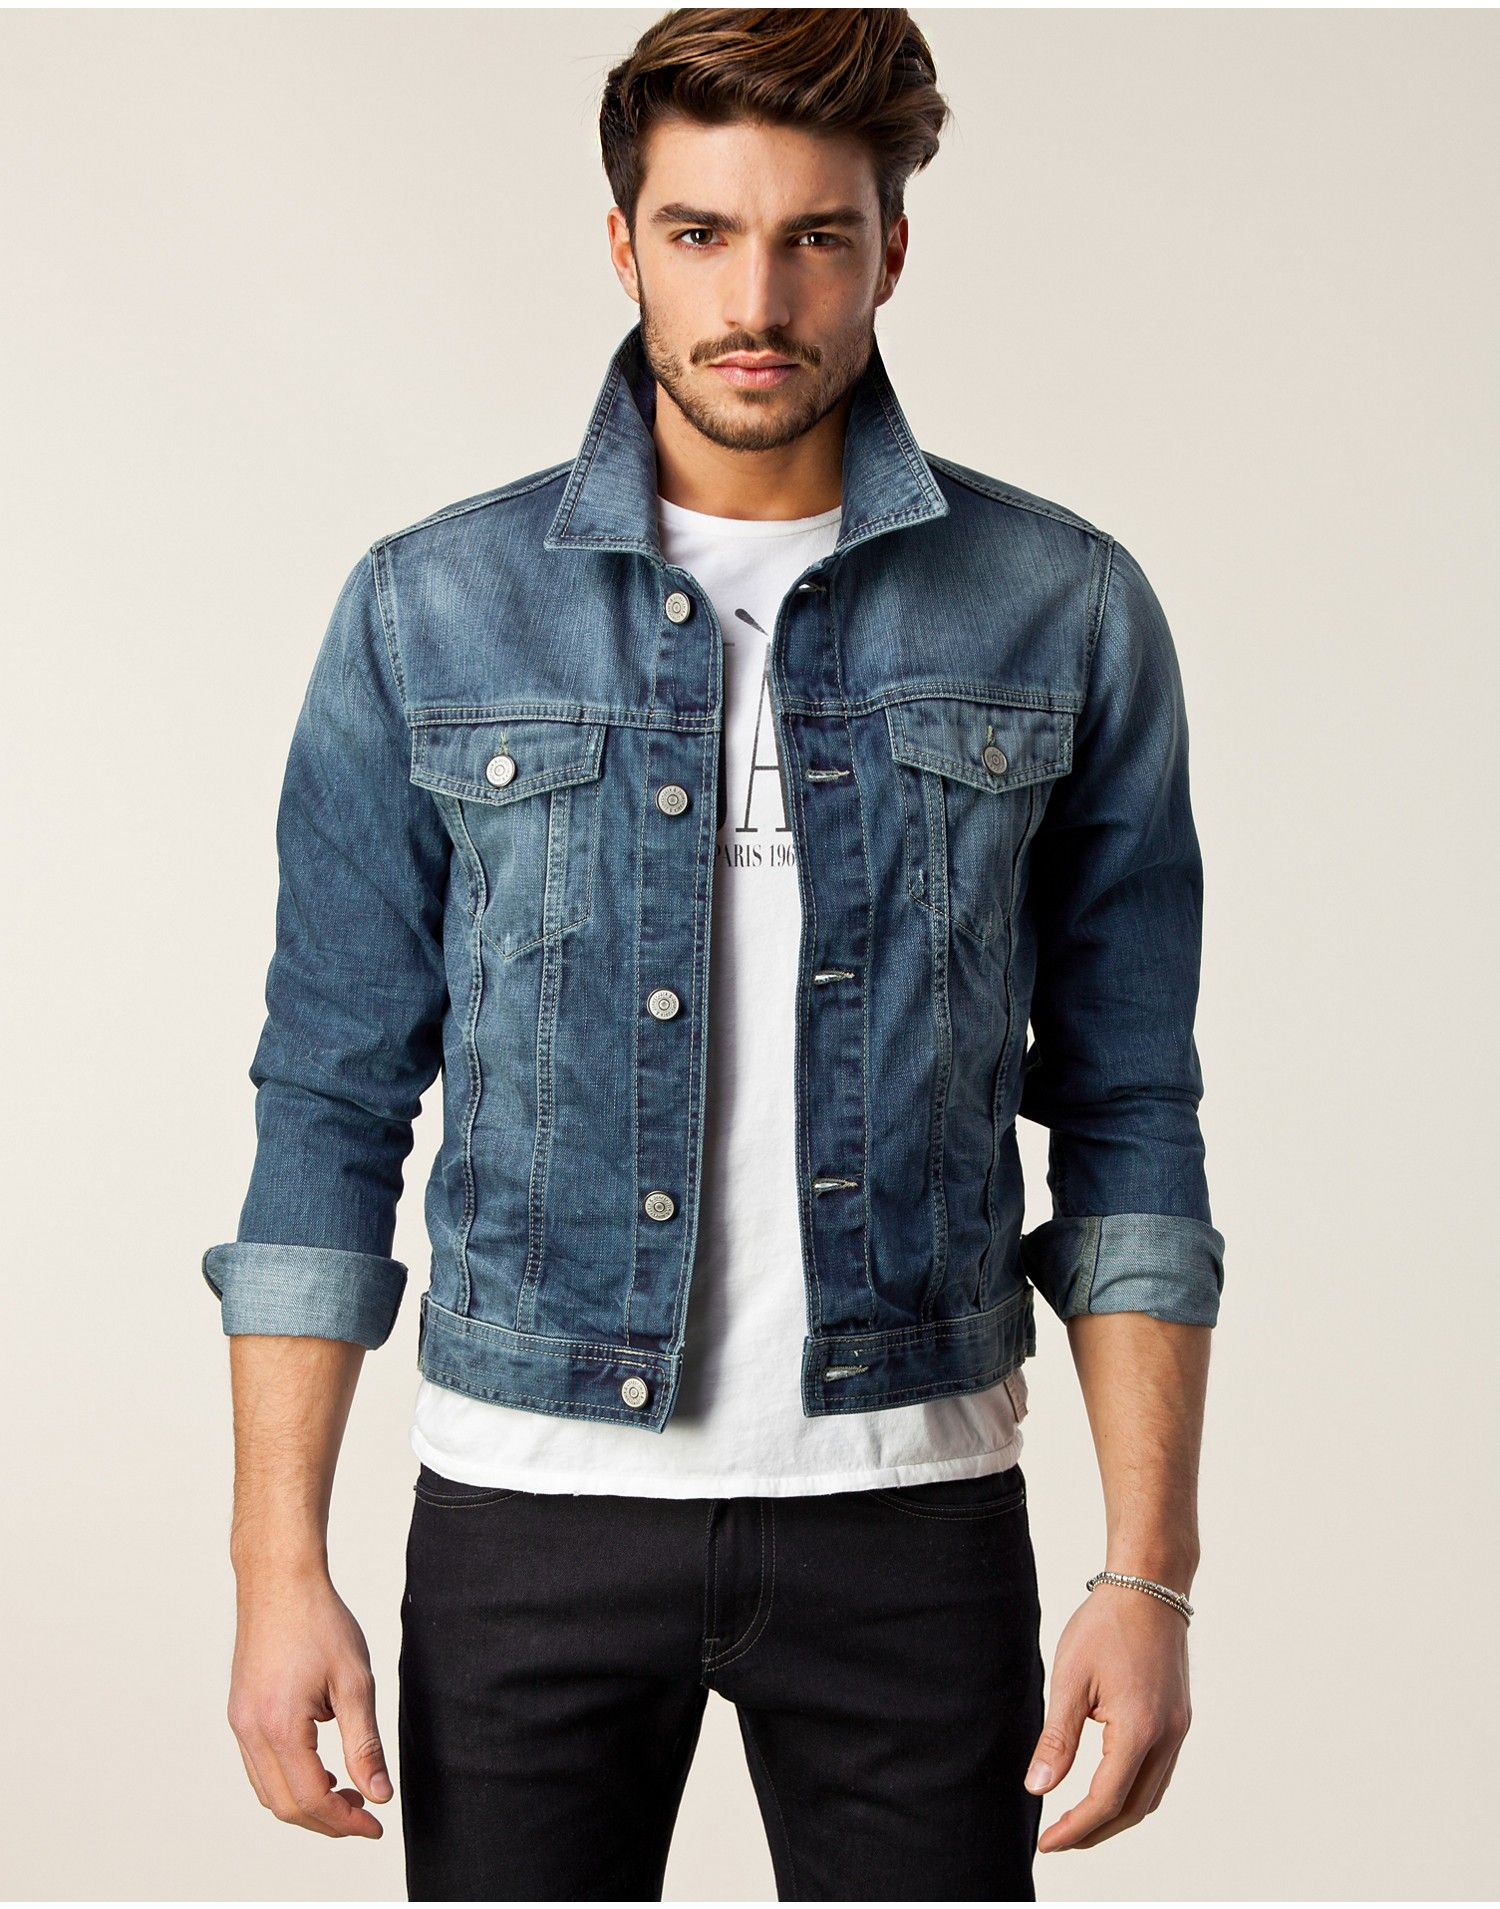 17 Best images about Denim for Men on Pinterest | Men's denim ...